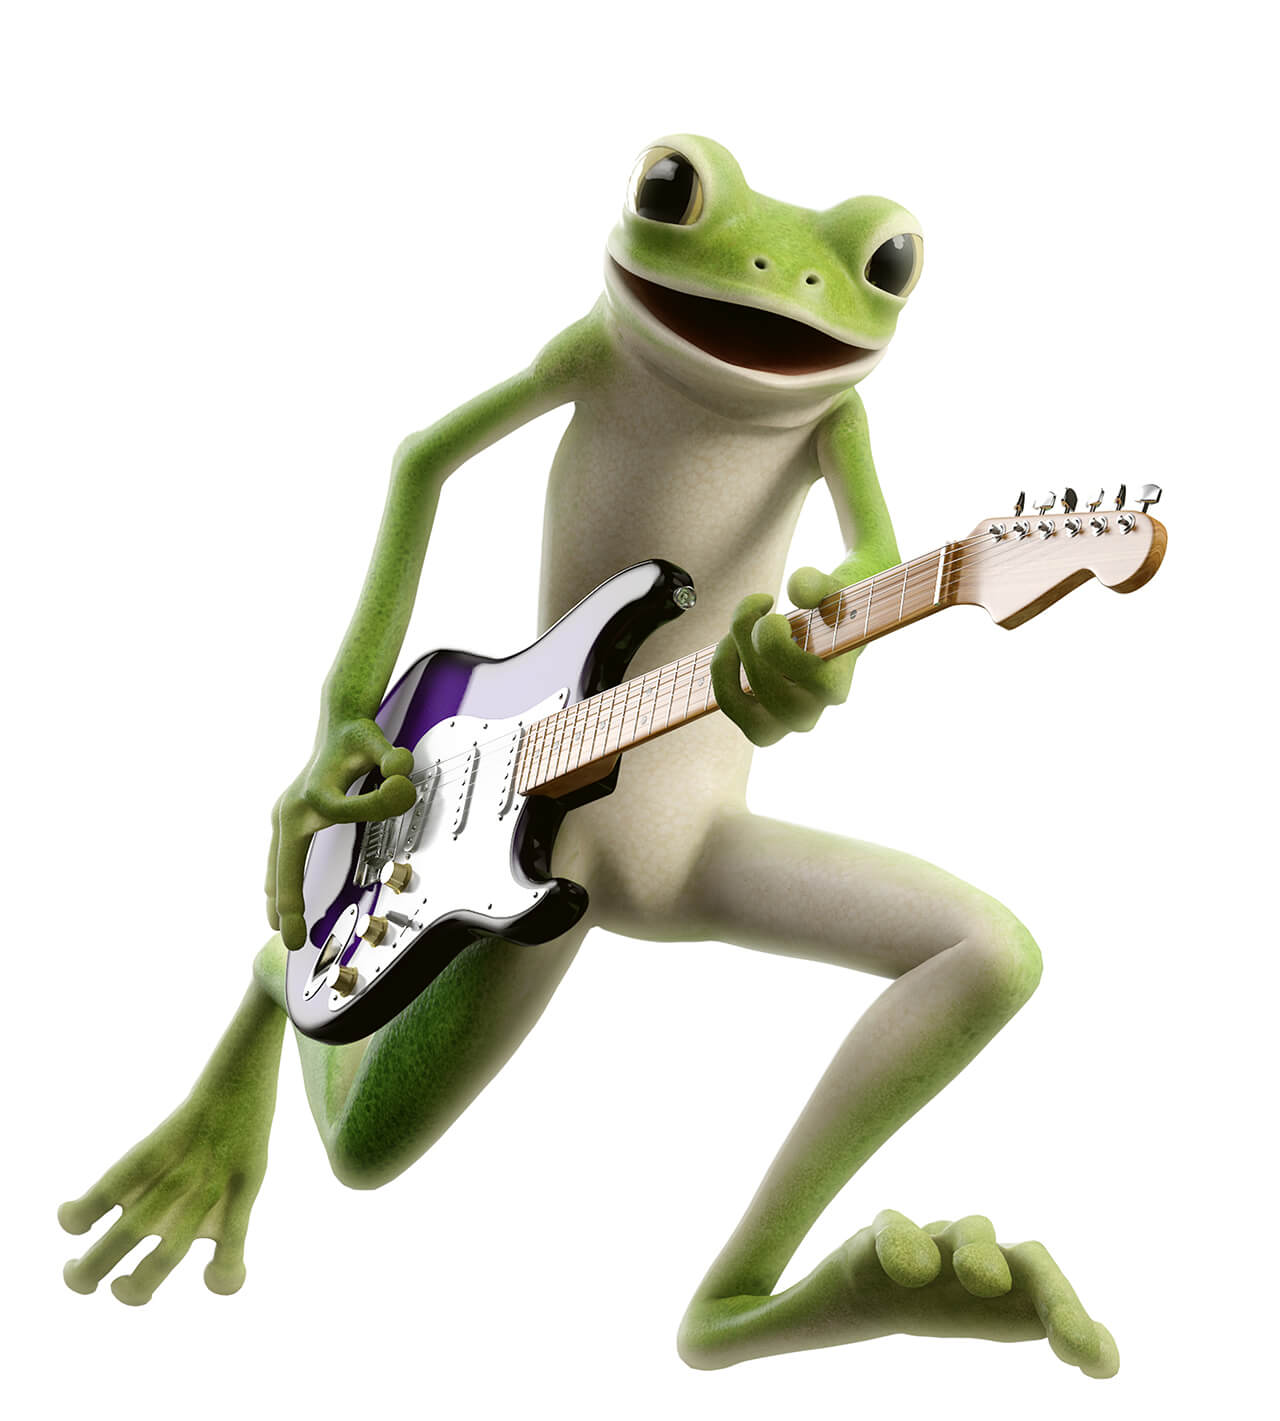 Computer generated image of a human like frog character playing a guitar